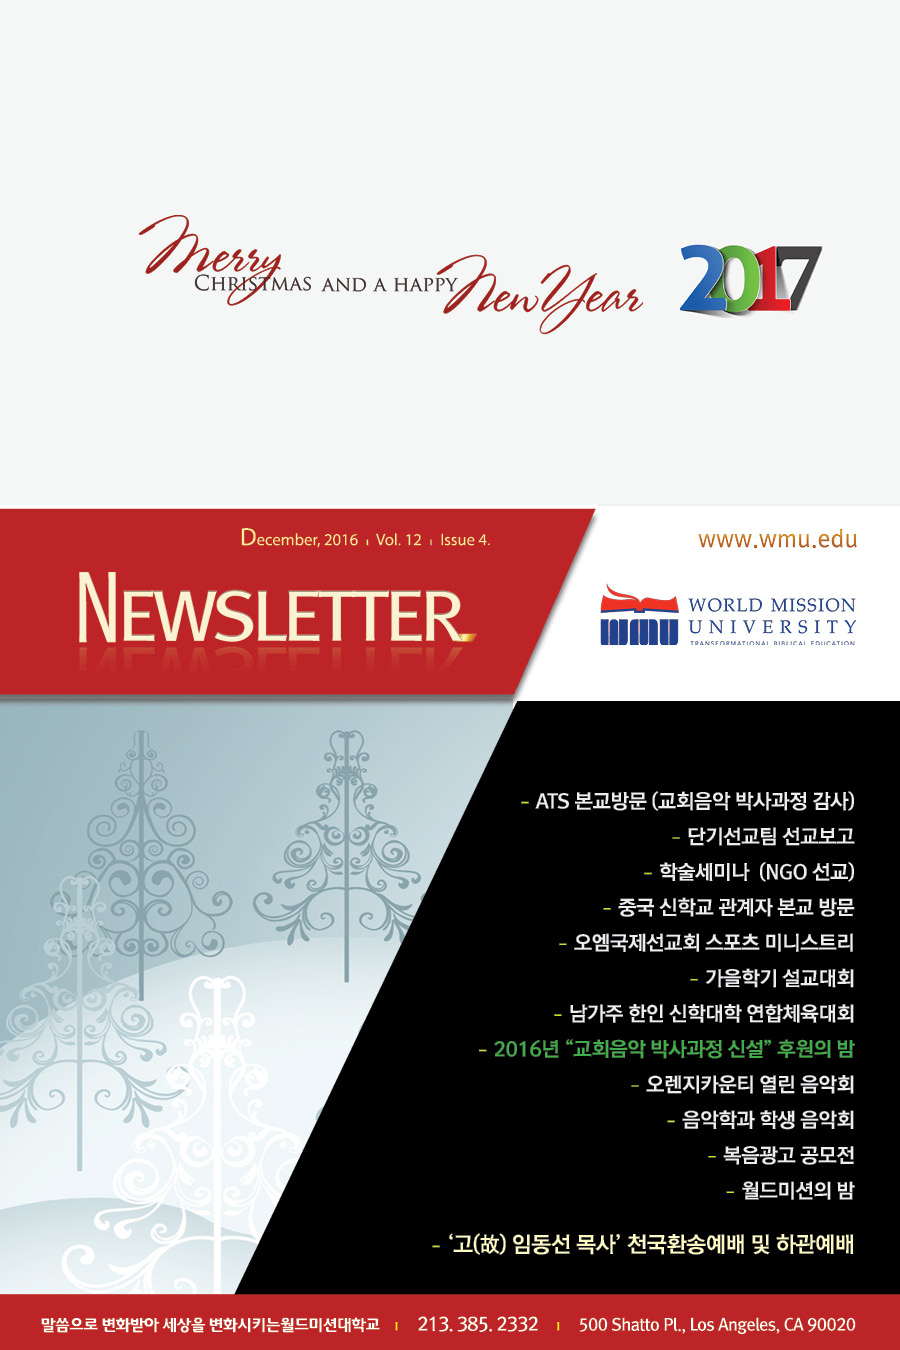 Newsletter_Vol-12_4_img1.jpg